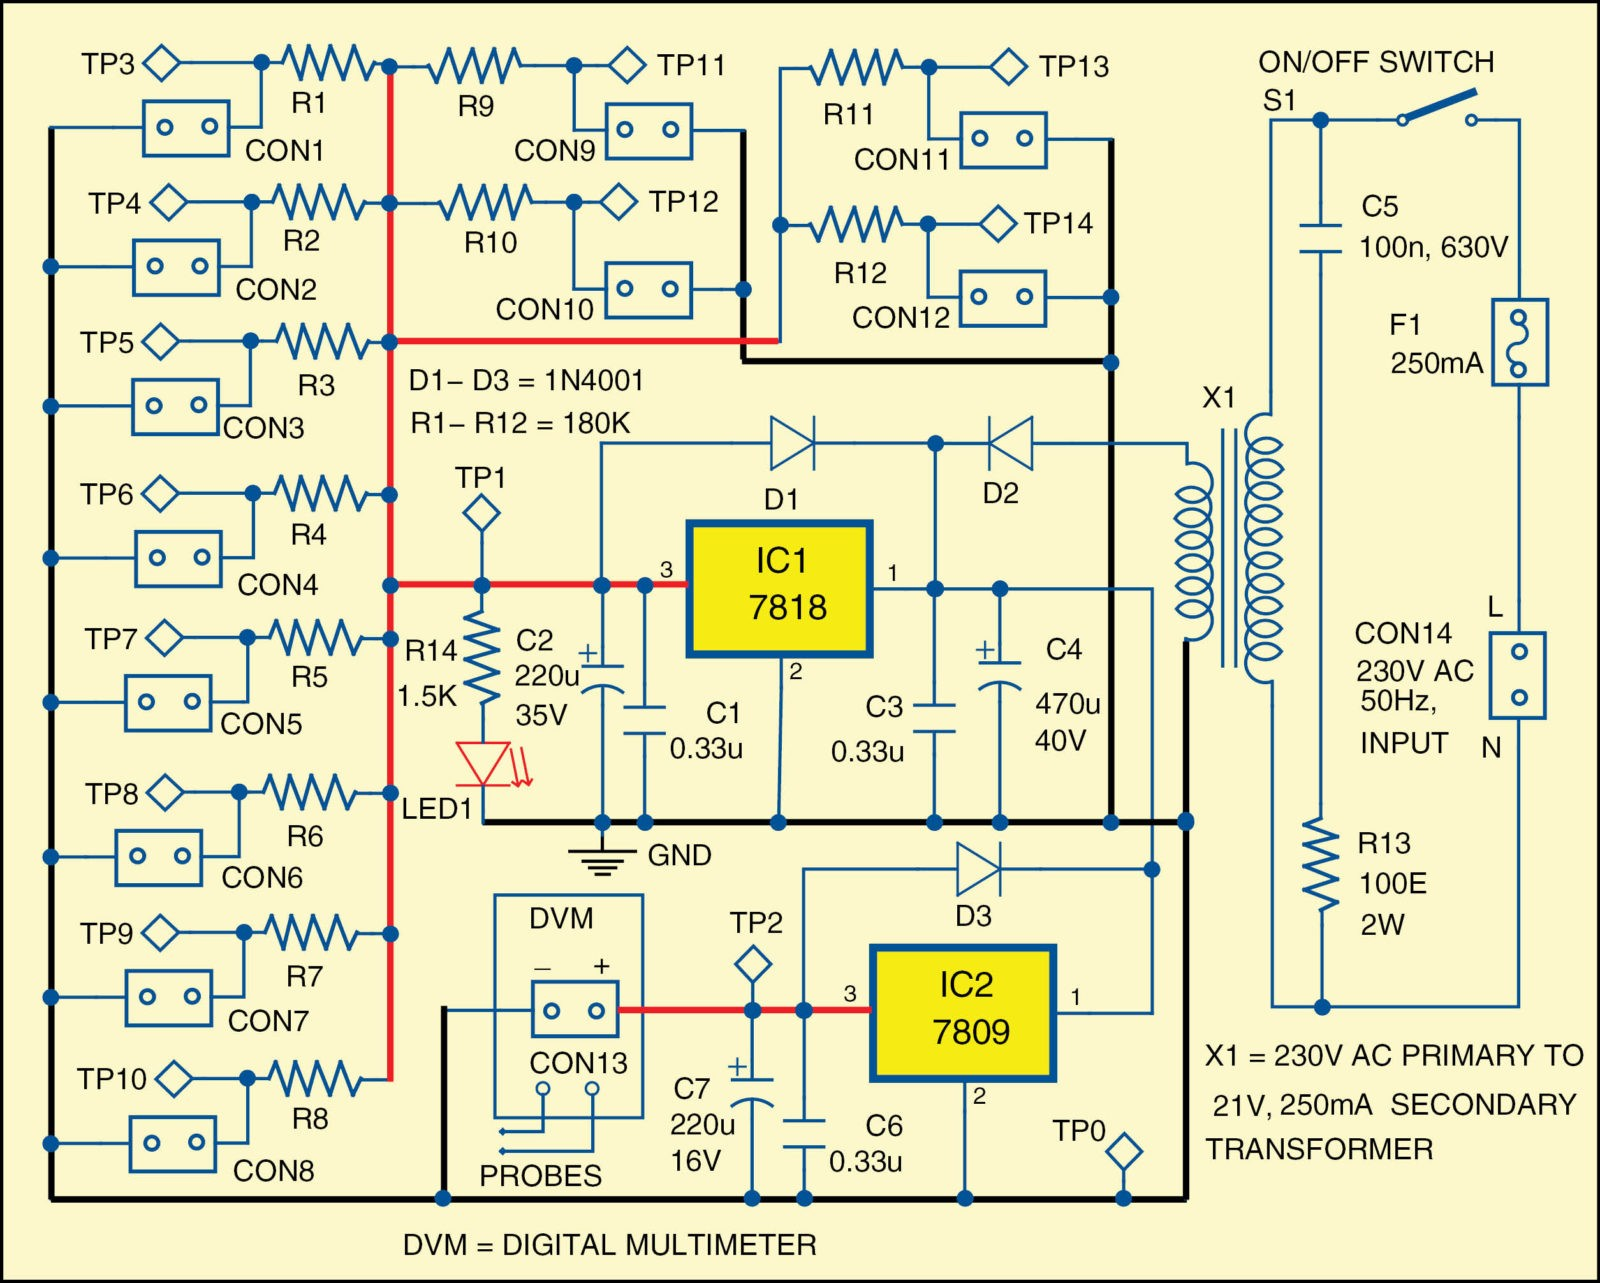 Fig. 1: Circuit diagram of the device